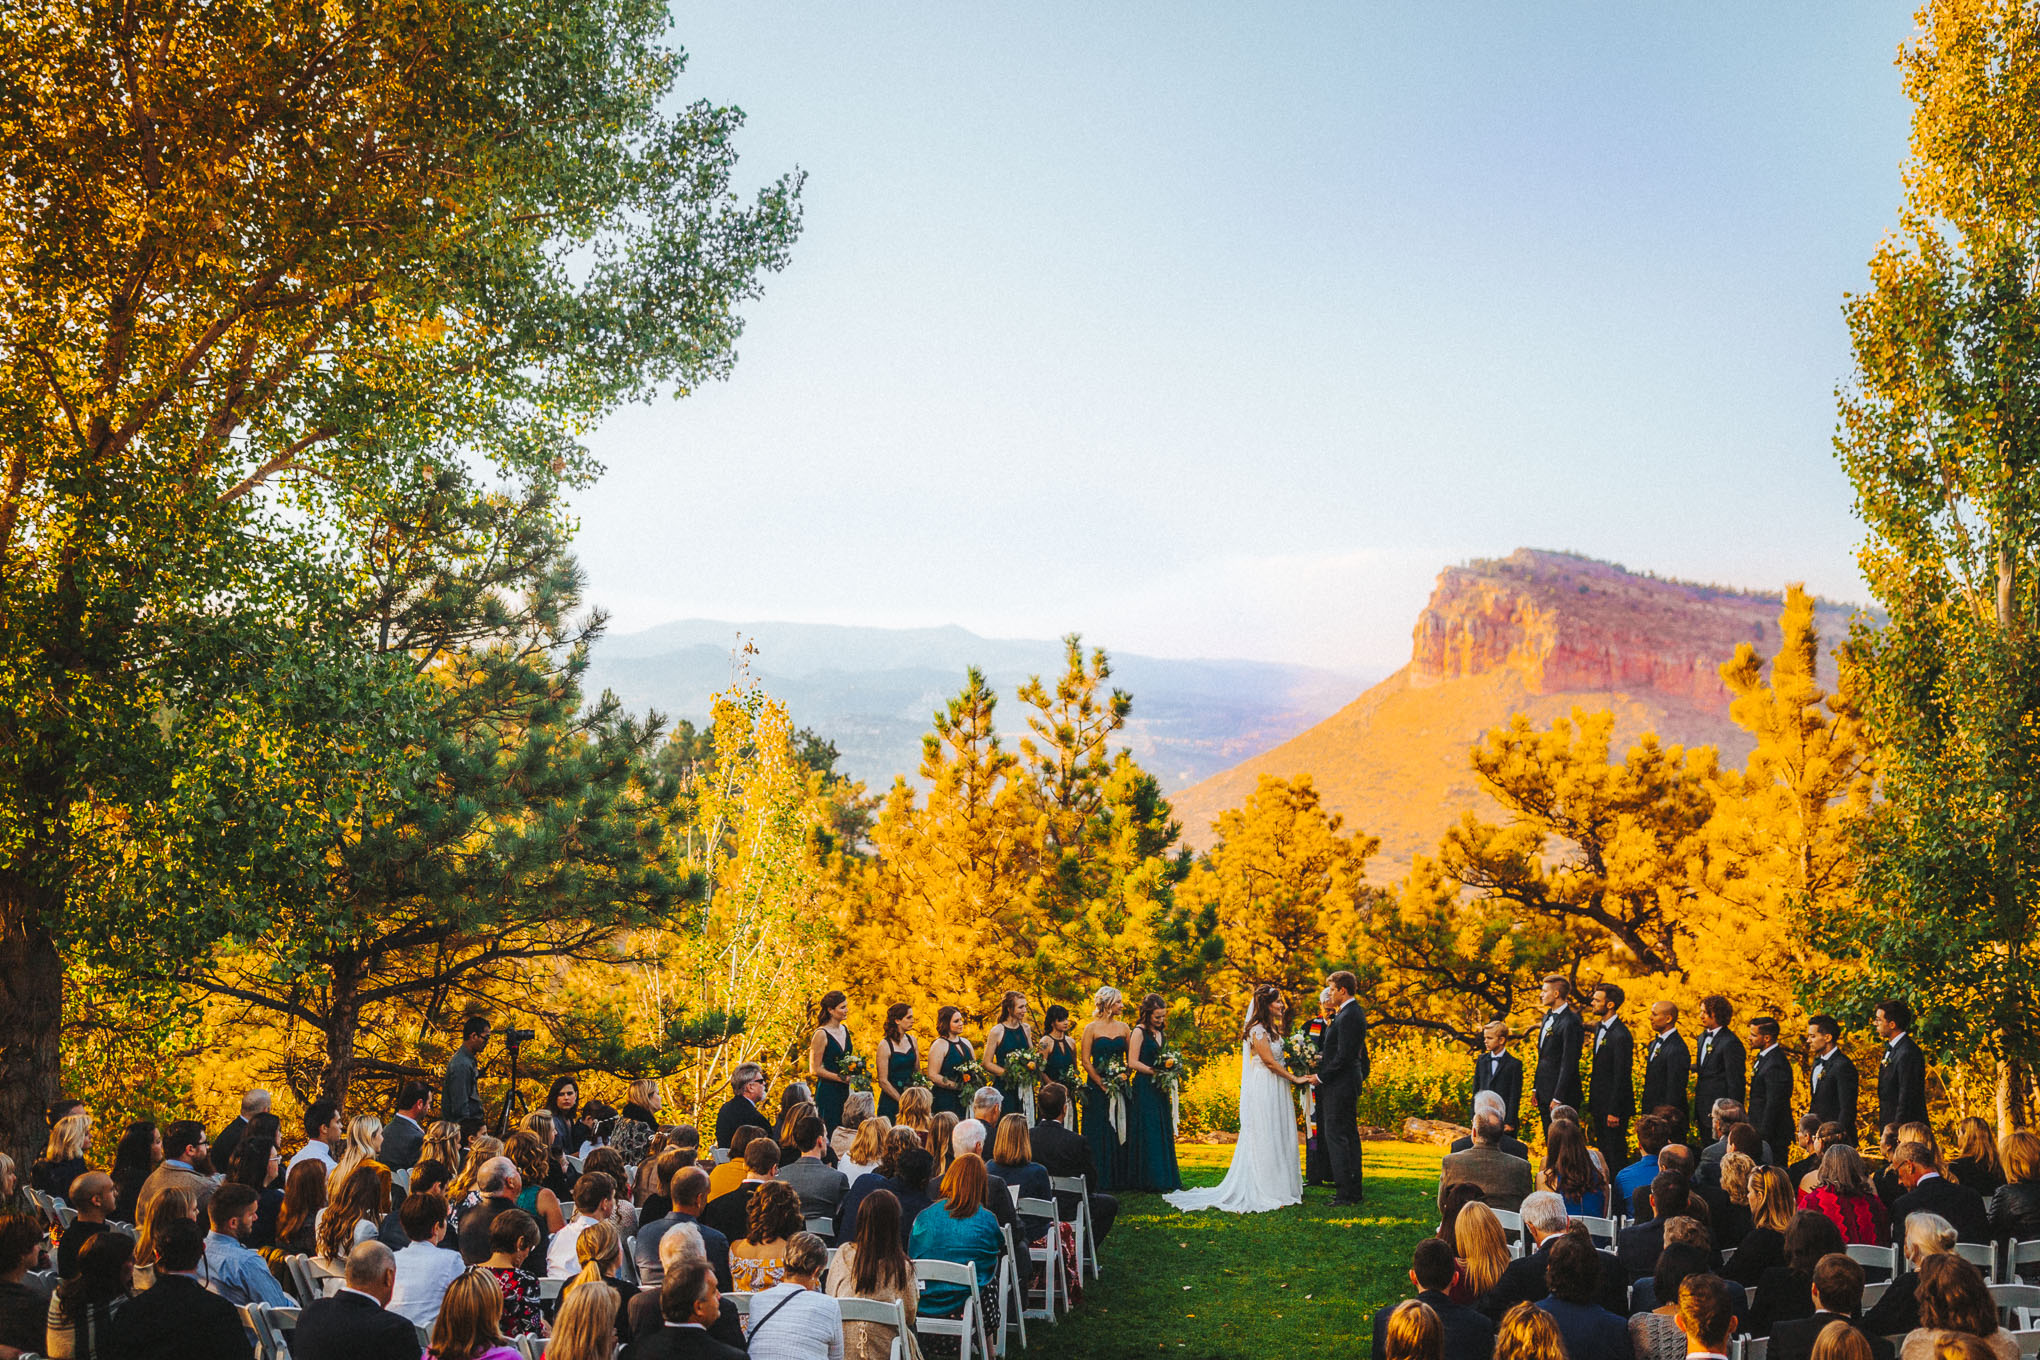 colorado, destination wedding, bryden giving photographer, lionscrest manor, boulder, denver, wedding photography, destination wedding, elopement